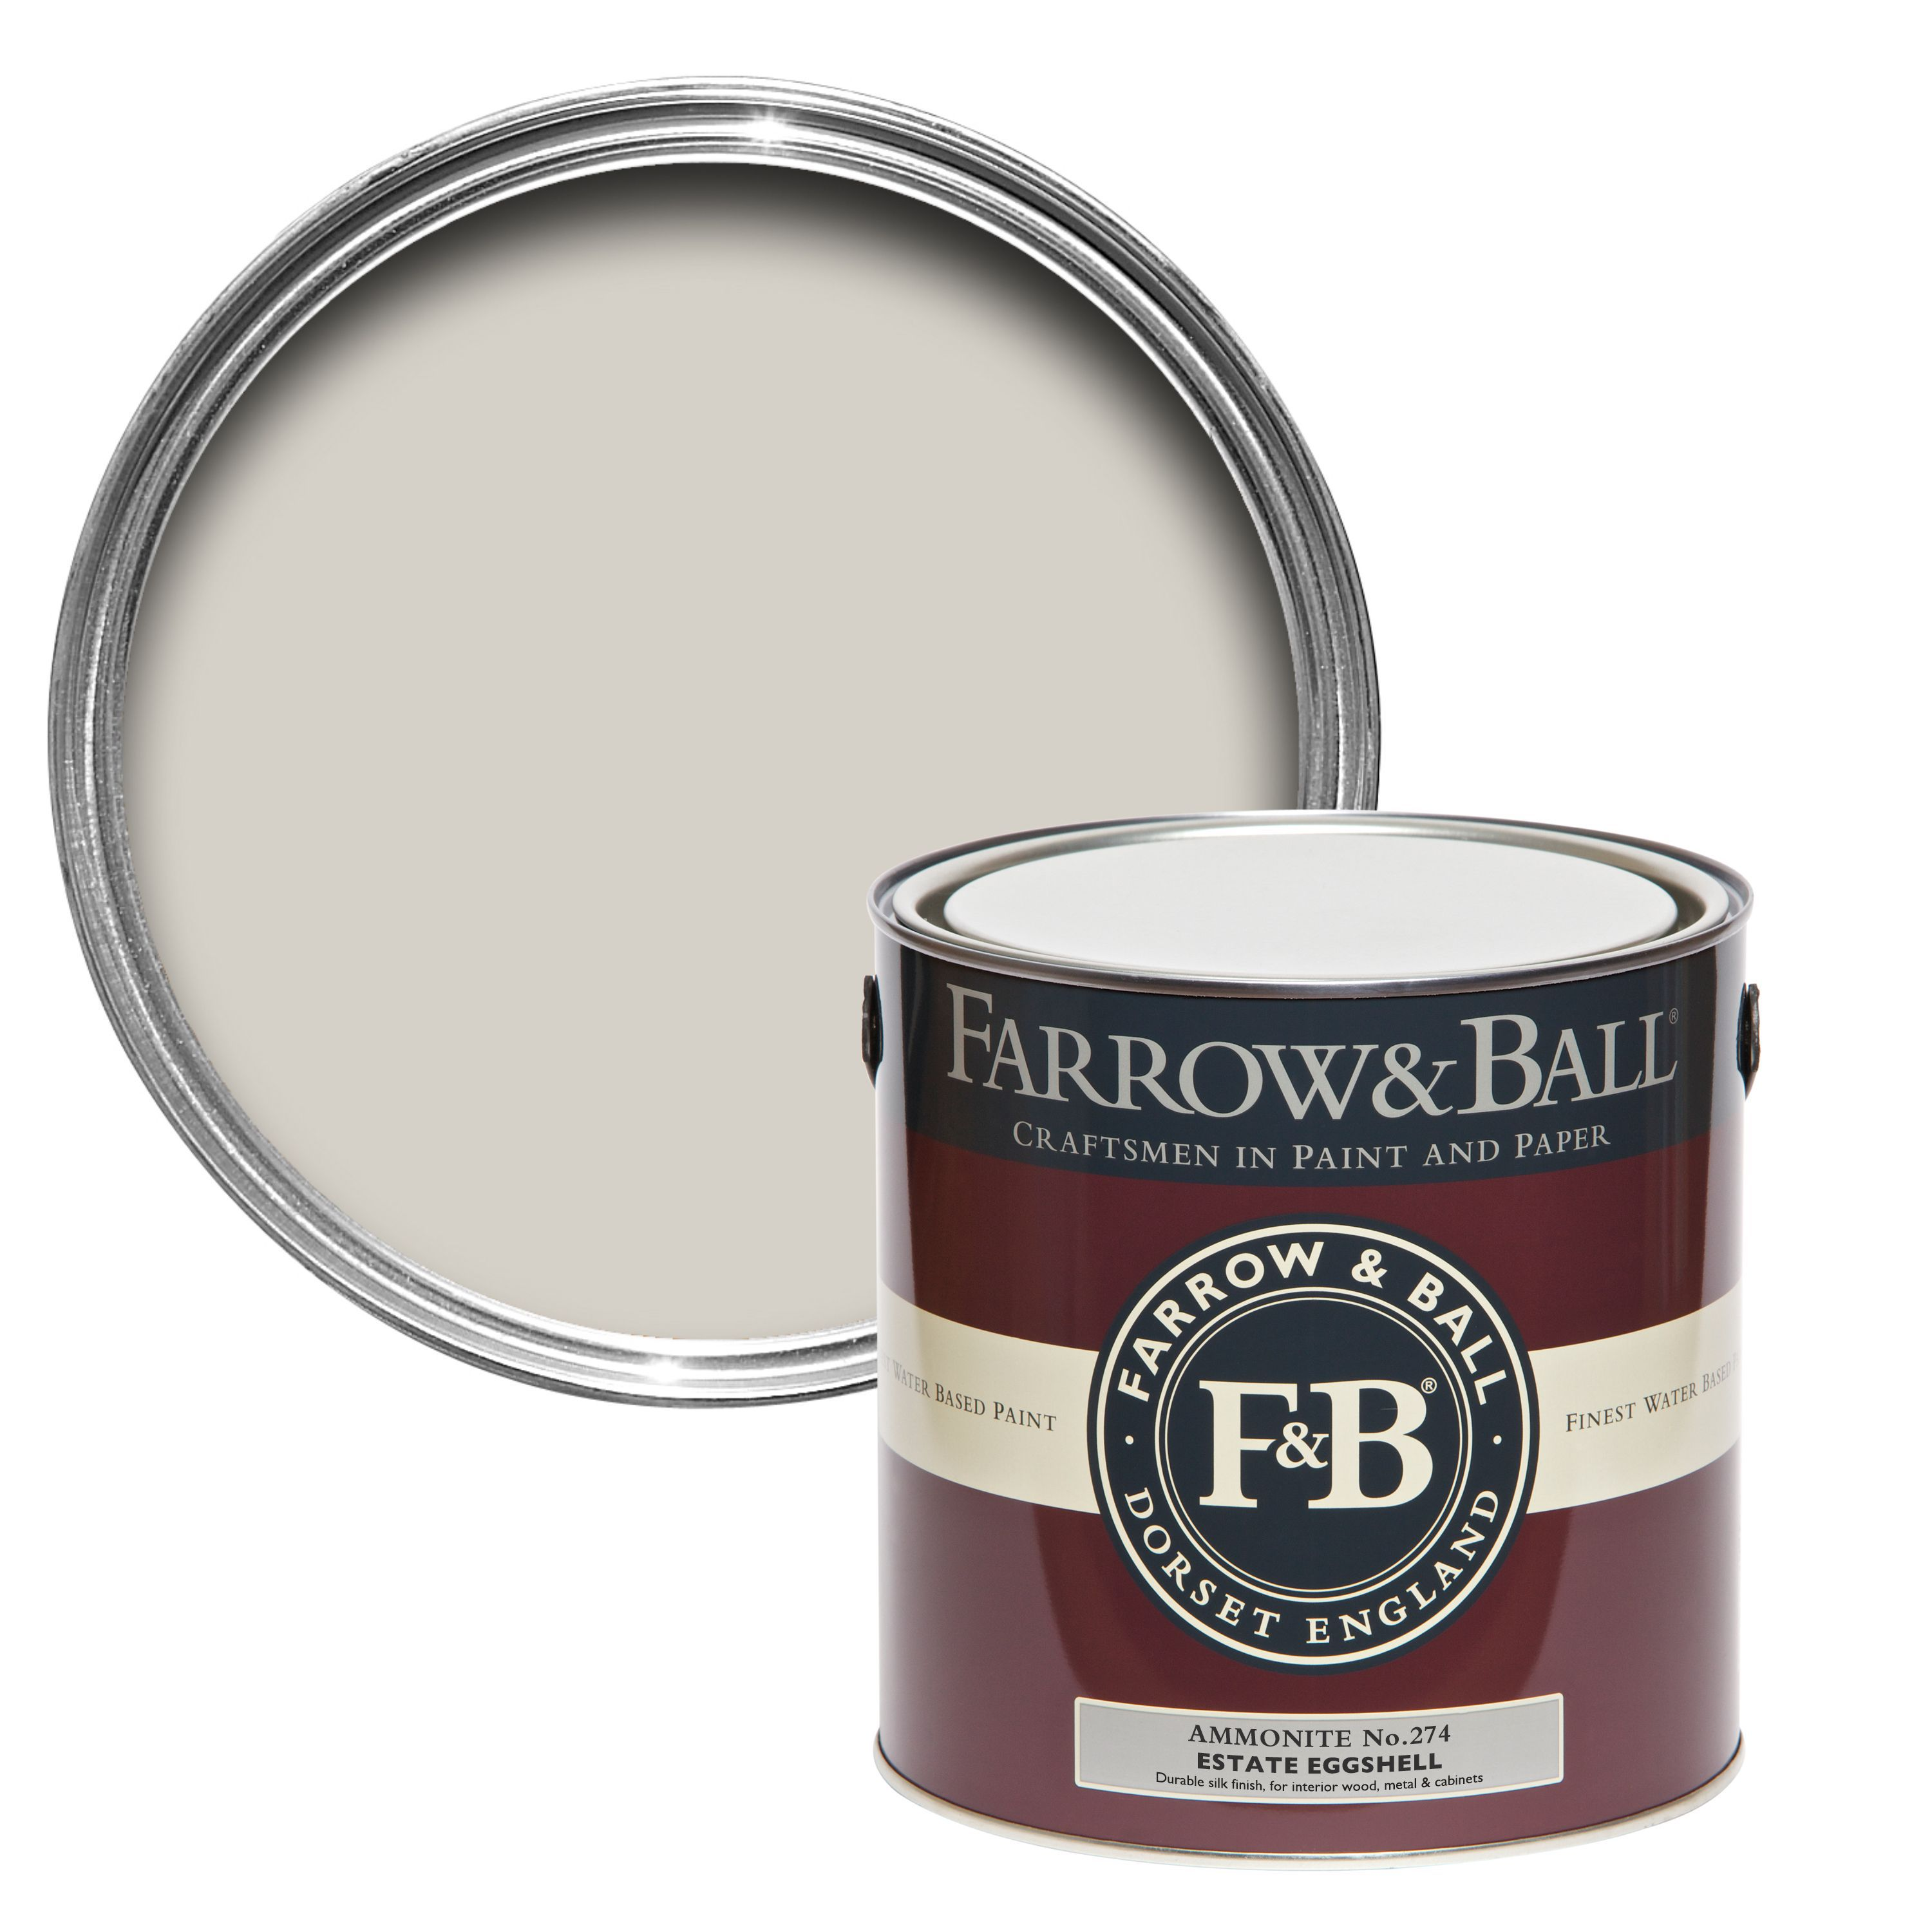 Magnifiek Farrow & Ball Ammonite no.274 Estate Eggshell paint 2.5L #IZ74